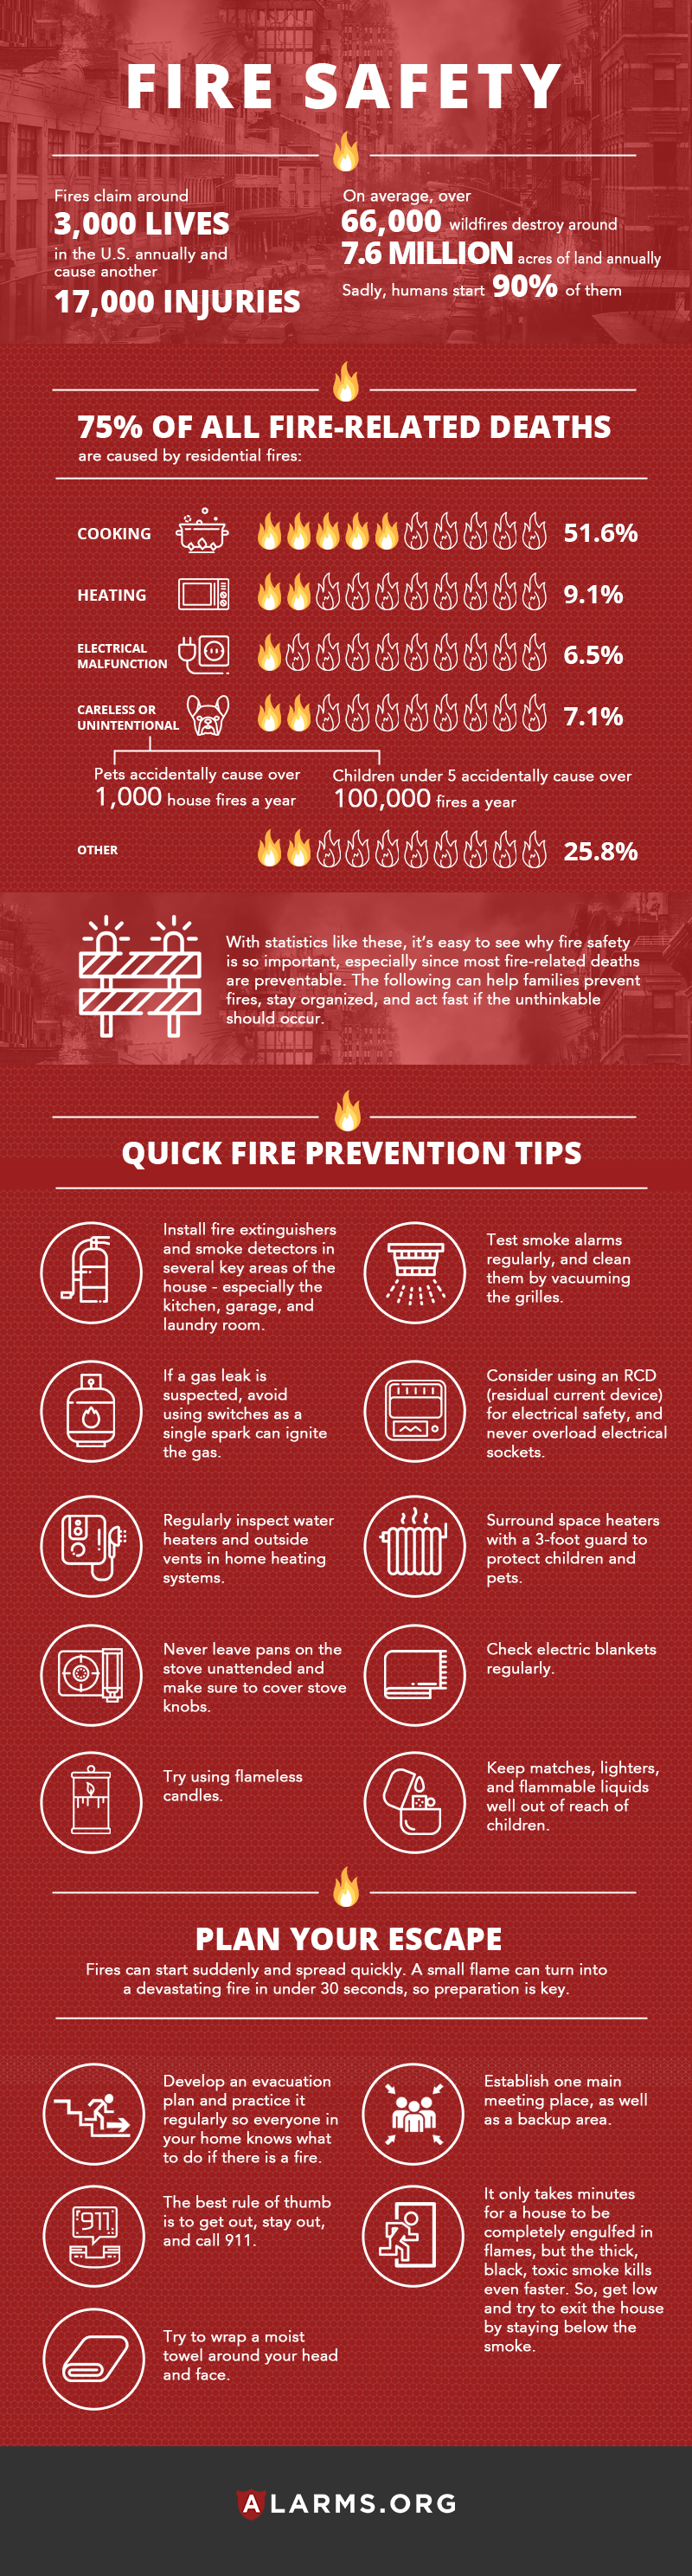 "alt=""Fire Safety Guide with Quick Fire Prevention Tips, Escape Plans and Fire Fact. All Information listed out on page"""